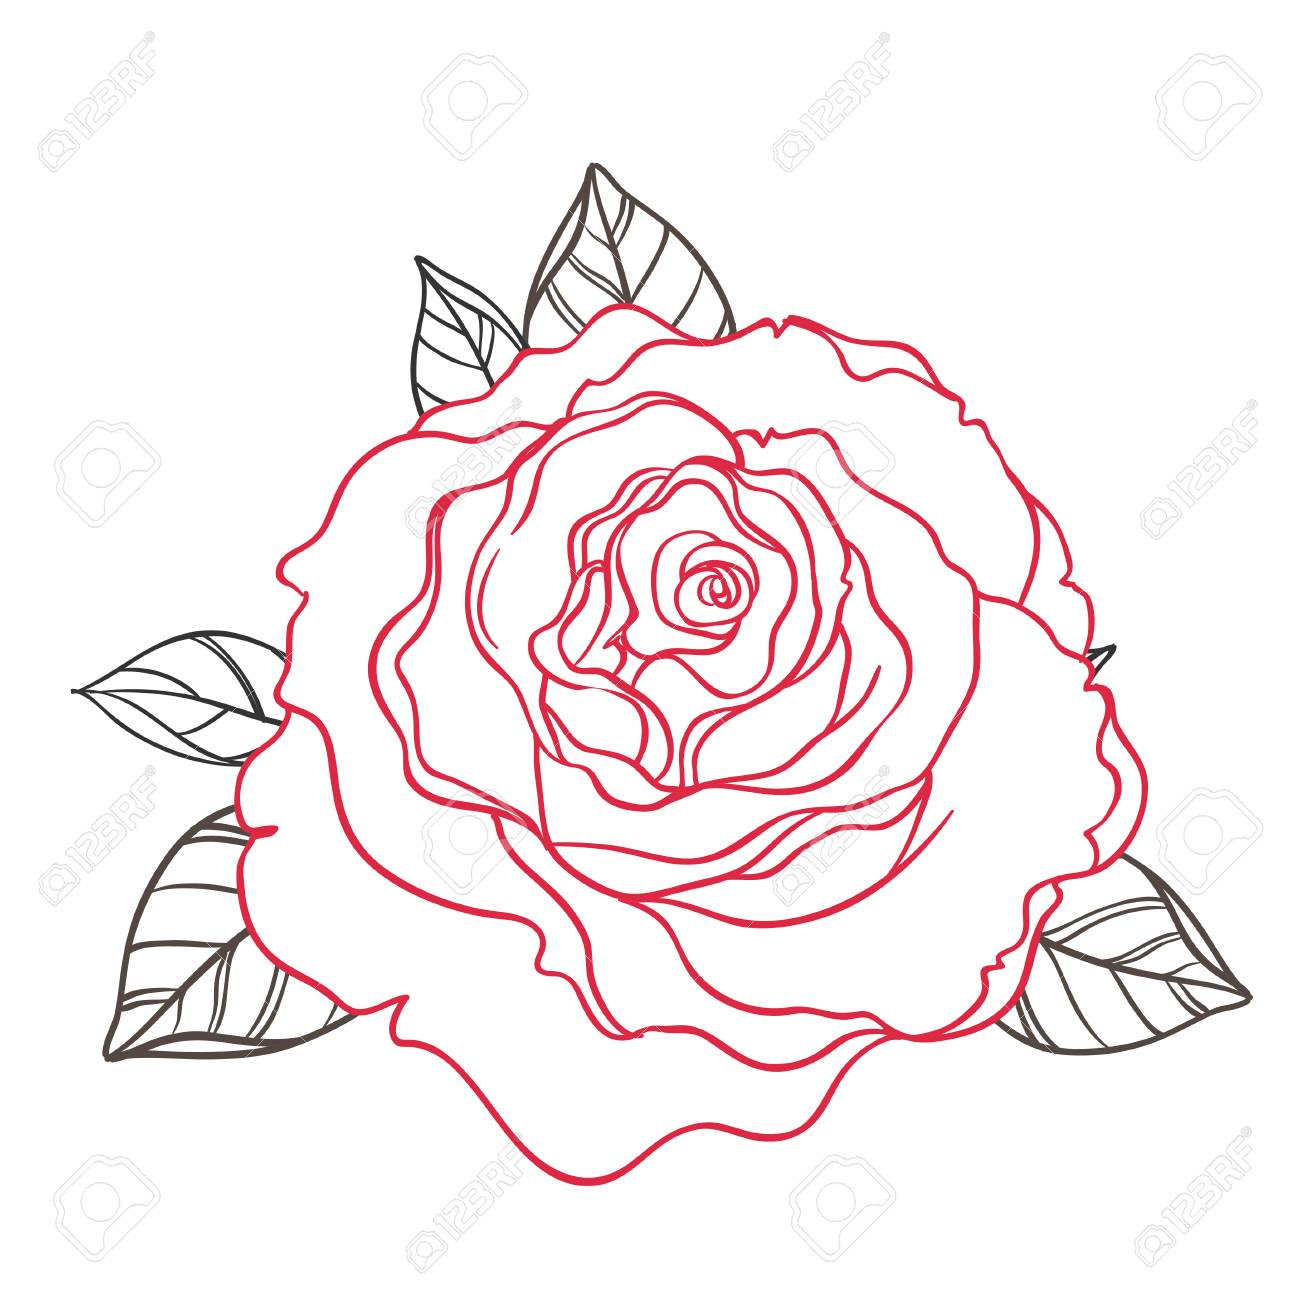 1300x1300 Black And White Tattoo Style Roses With Leaves Isolated On White